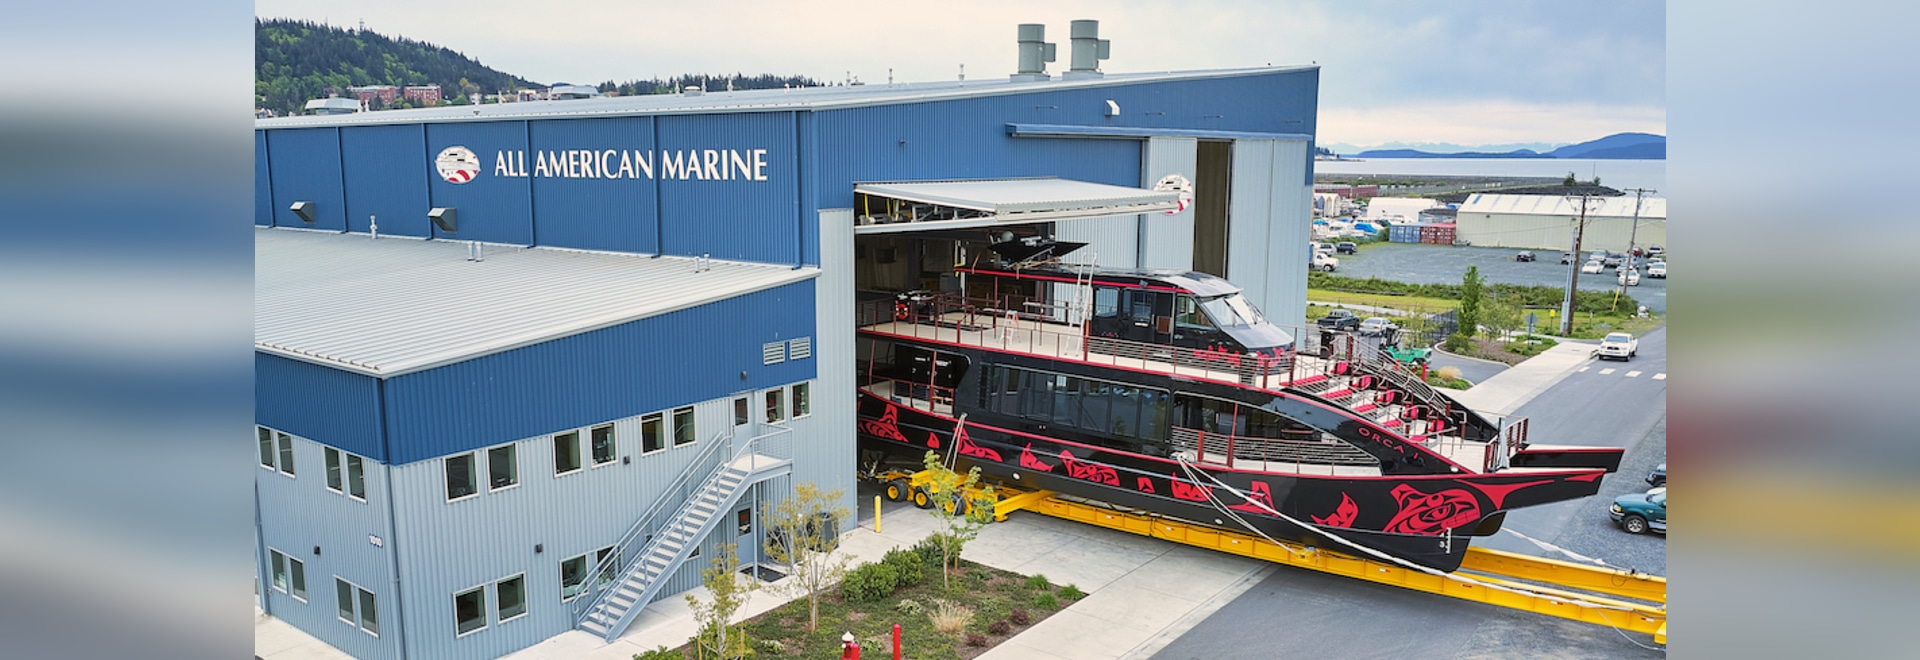 These 149 passenger catamarans are powered by twin Caterpillar C18 engines producing at 803 hp at 2,100 rpm each.